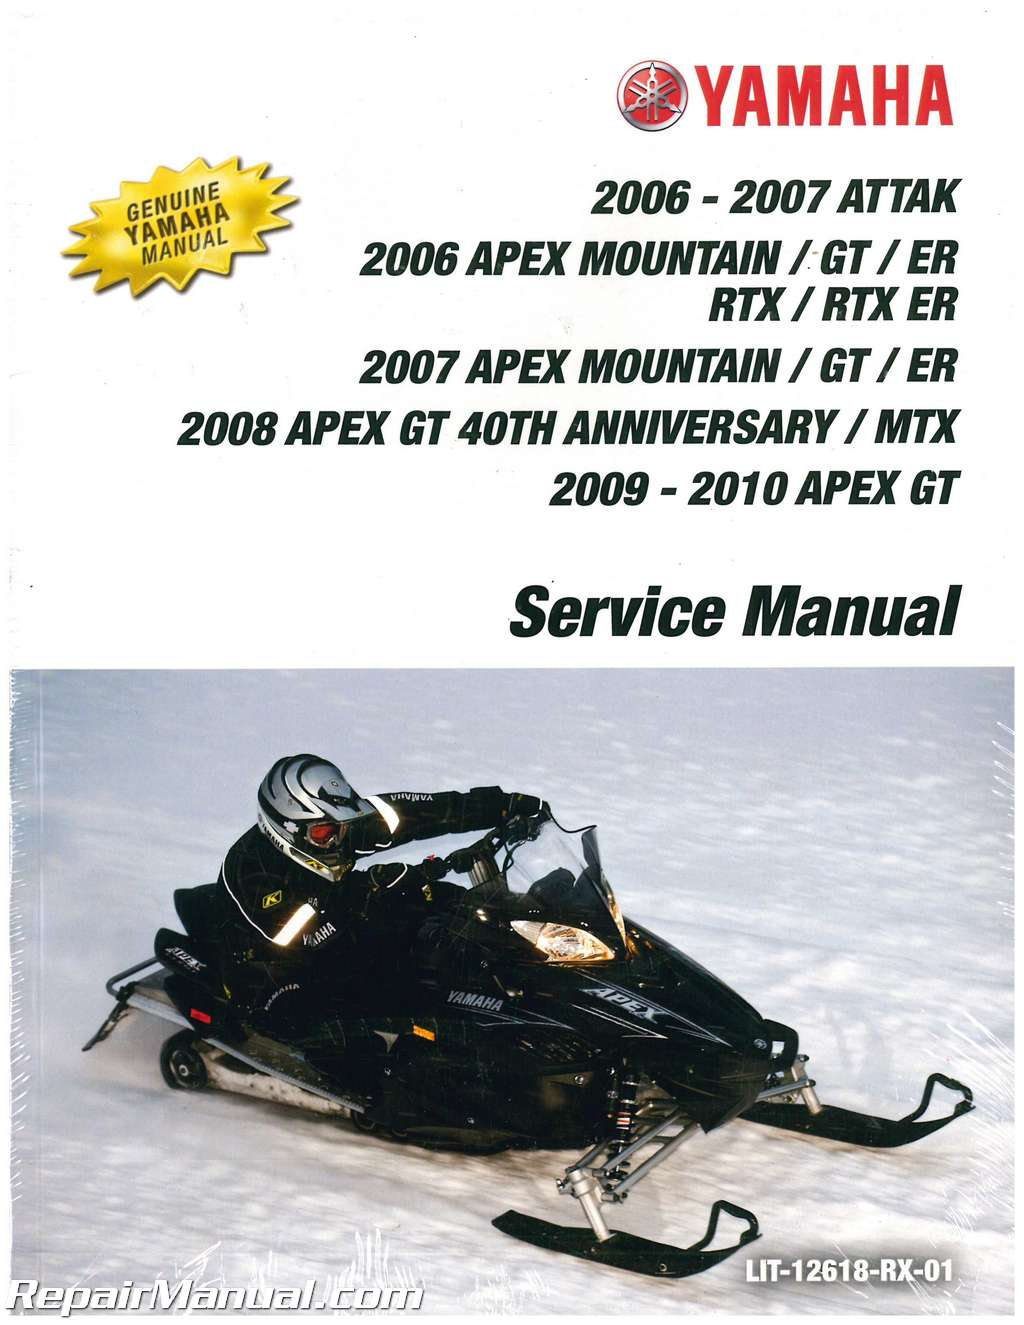 2006 2010 yamaha apex rx rxw10 snowmobile service manual rh repairmanual com 2007 Yamaha Apex Mountain 2008 Yamaha Apex Attack